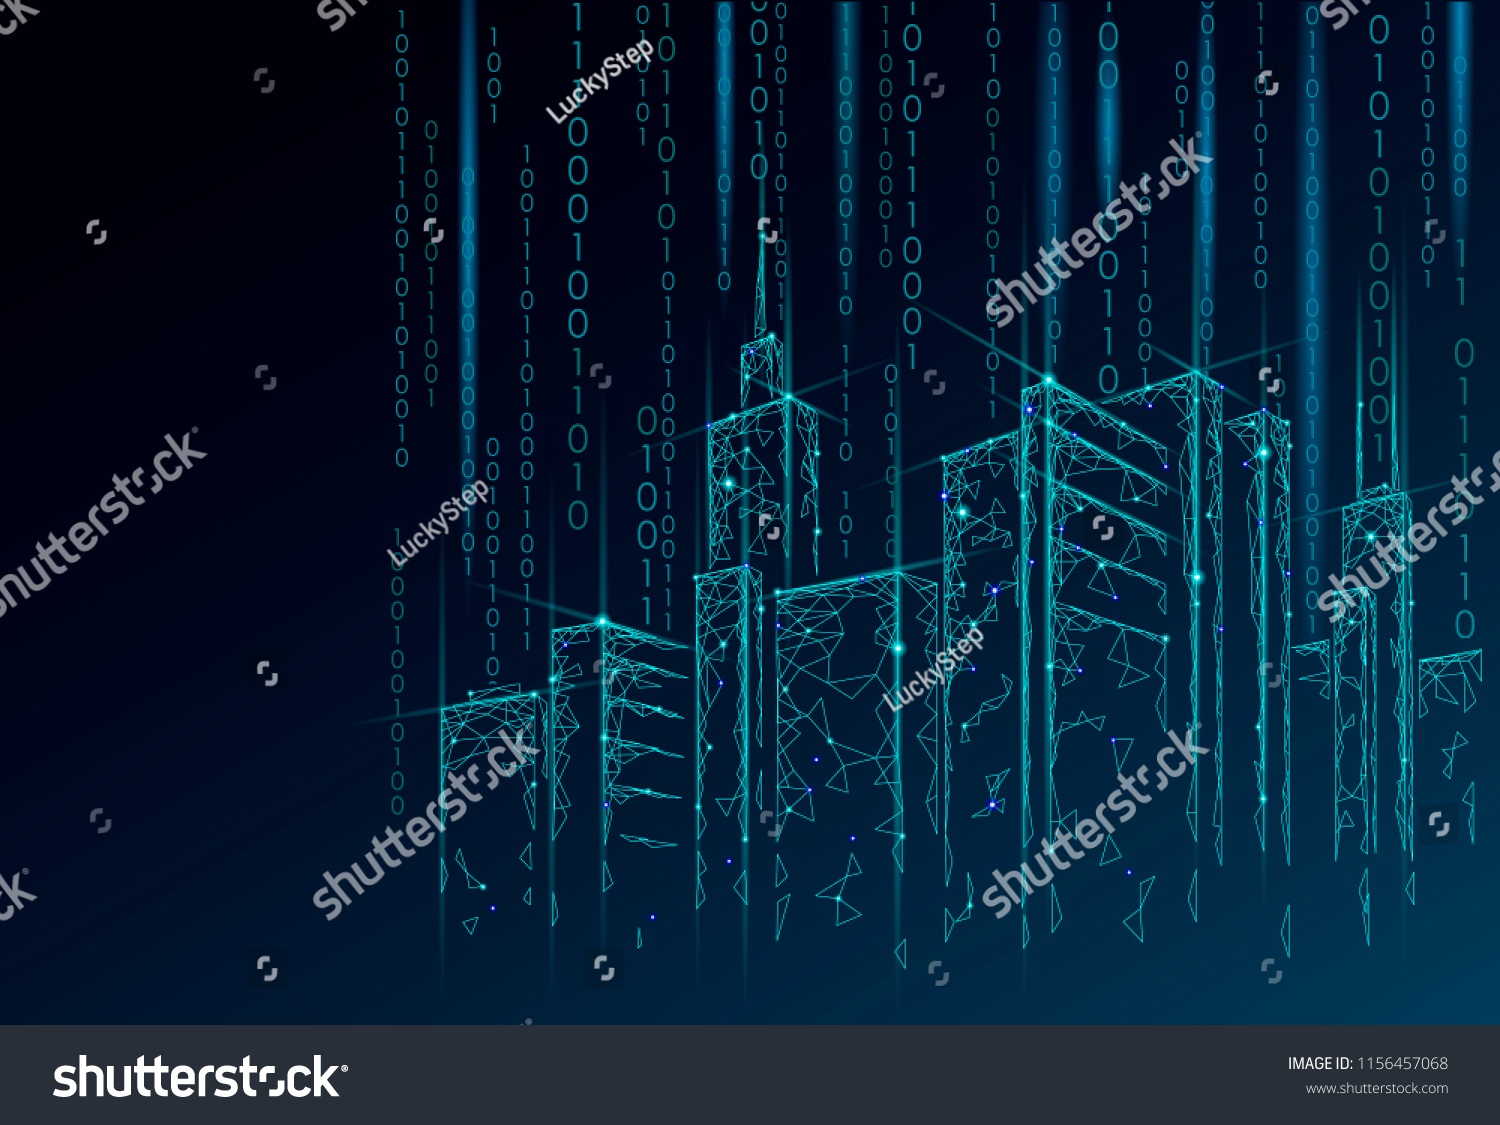 Low Poly Smart City 3 D Wire Stock Vector Royalty Free 1156457068 3d Building Electric Wiring Diagram Mesh Intelligent Automation System Business Concept Binary